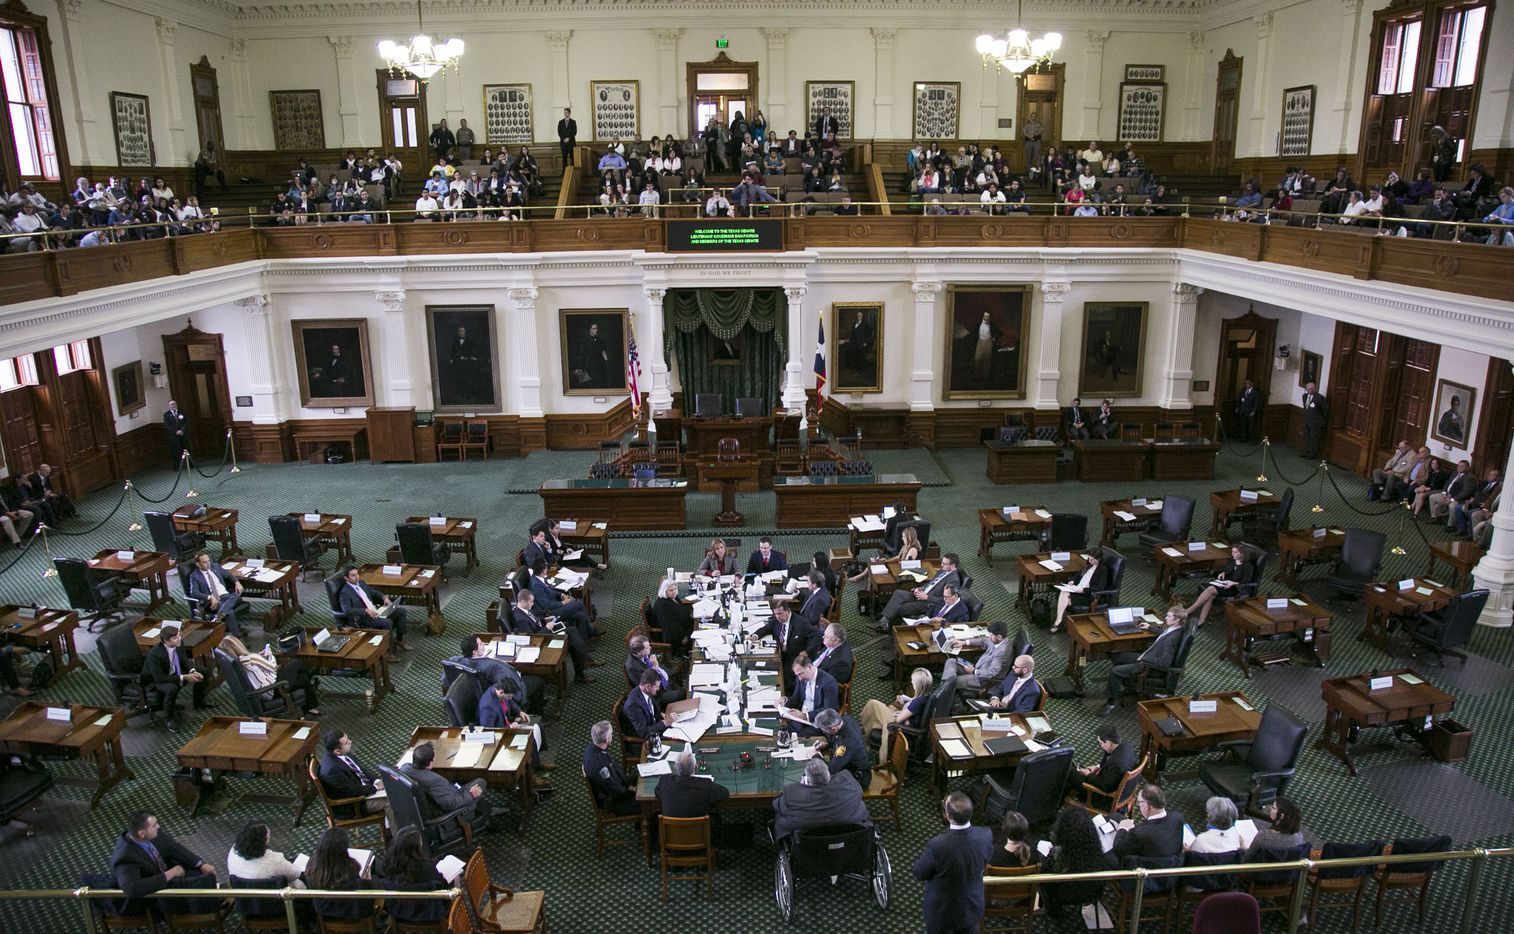 Hundreds of people arrived at the Texas Capitol Thursday, February, 2, 2017 for a hearing in the Texas Senate on a bill to ban so-called sanctuary cities, the term for local governments that decline in some way to cooperate with federal immigration enforcement efforts.